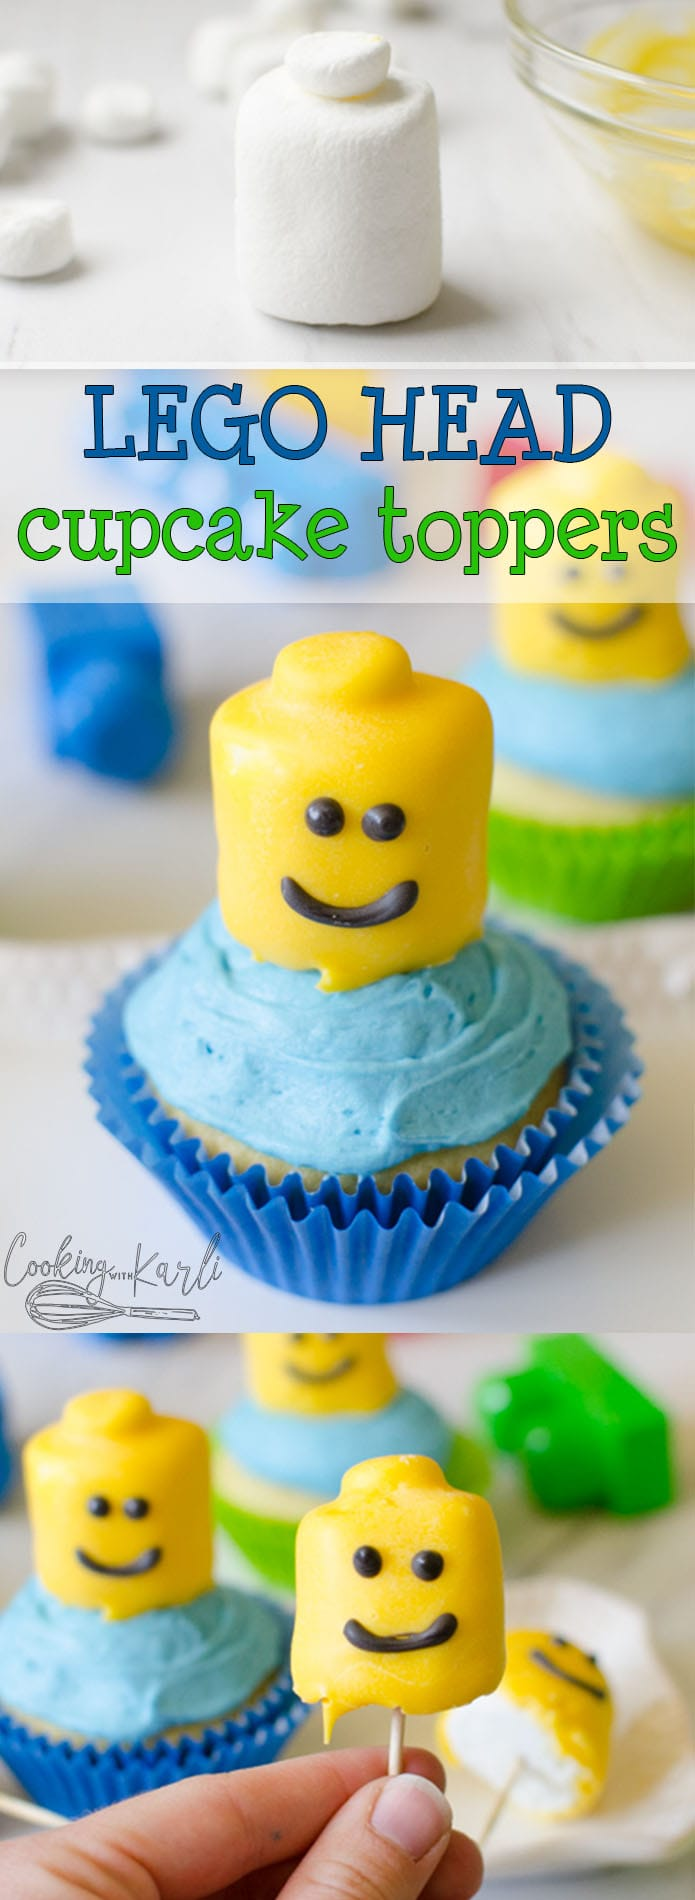 Lego Themed Birthday Cupcakes - Cooking With Karli